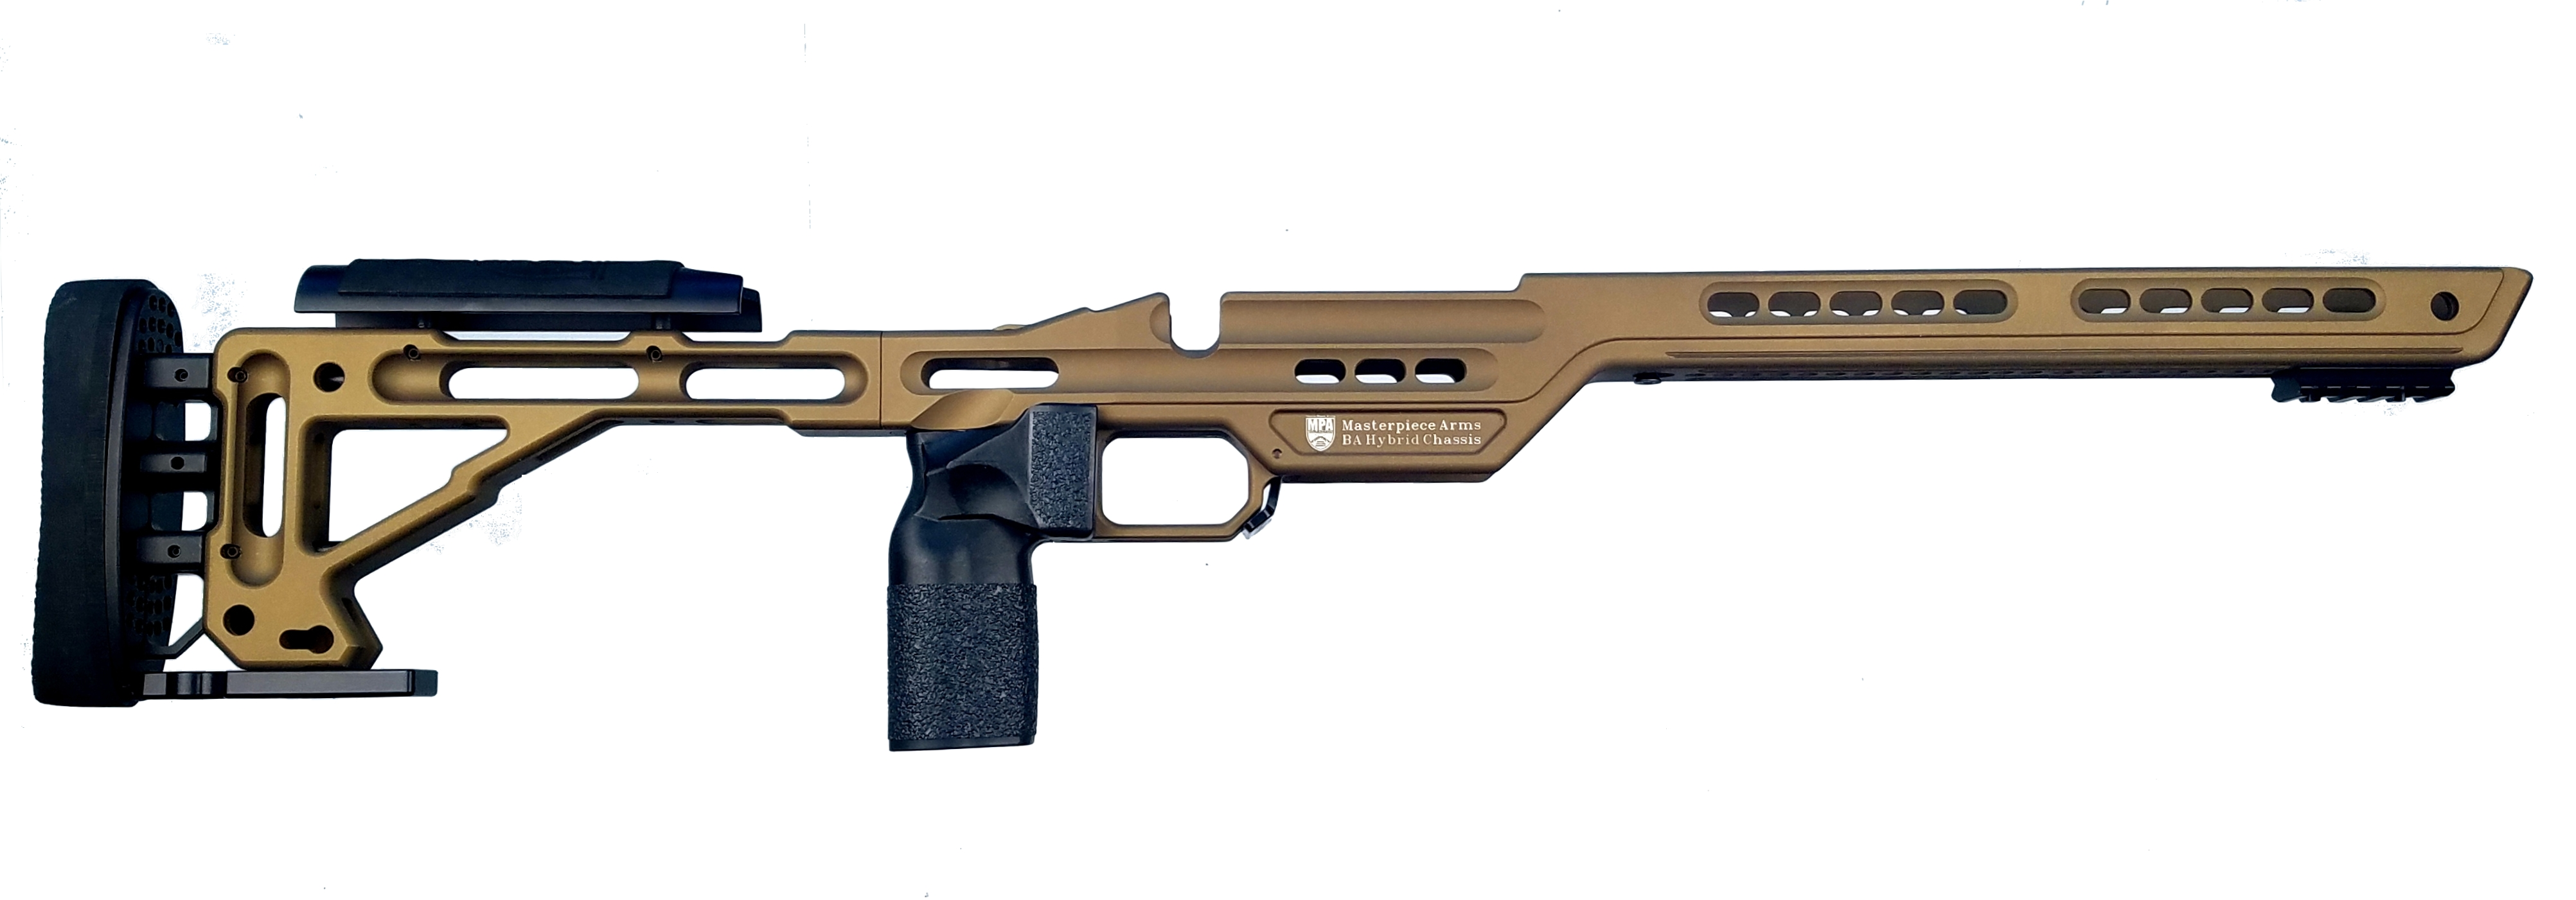 MasterPiece Arms Introduces the MPA BA Hybrid Chassis